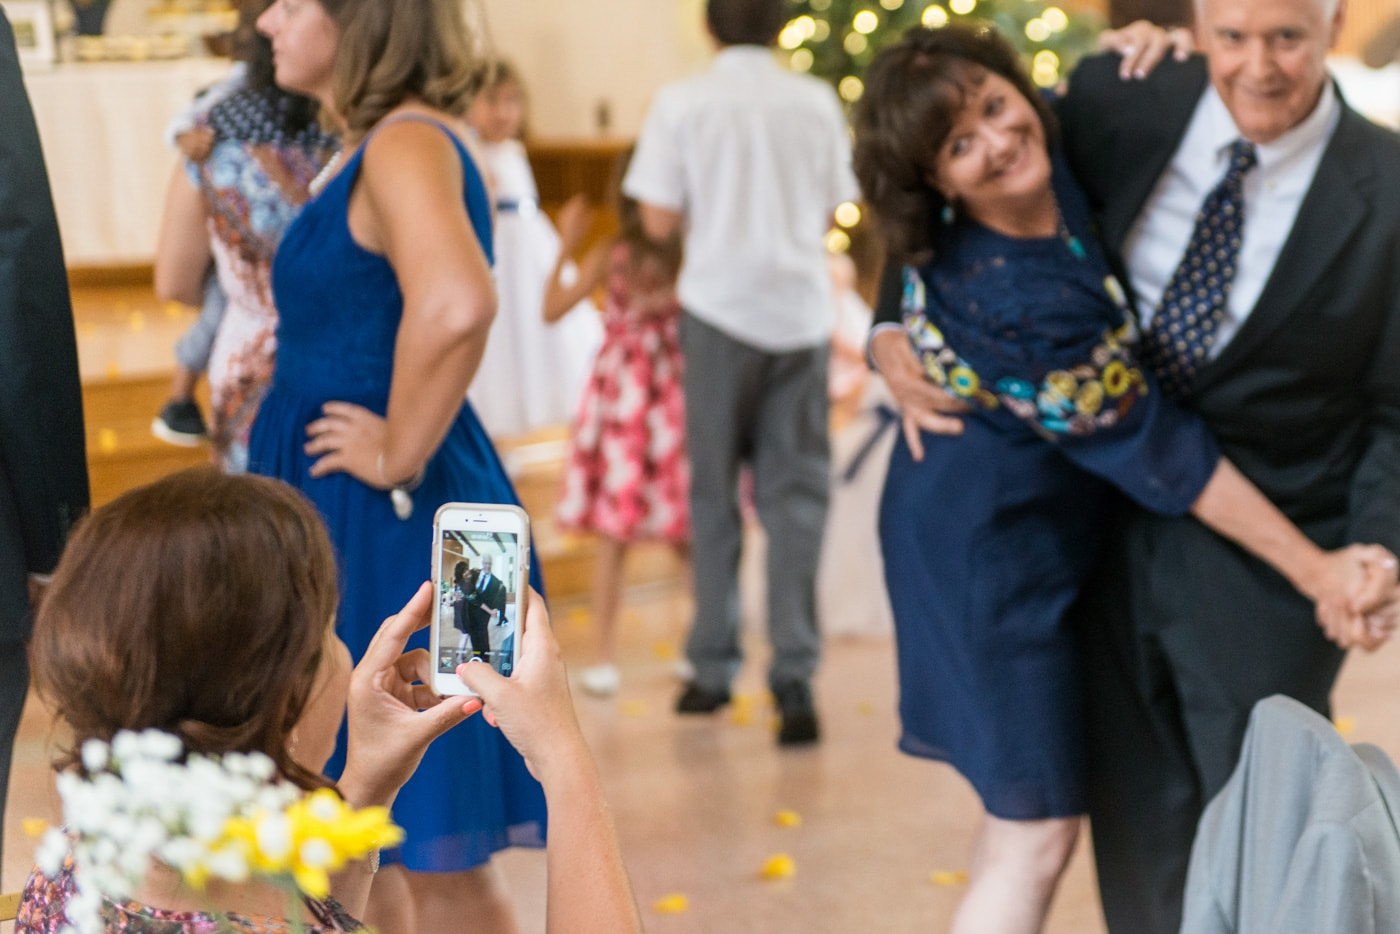 A couple dancing and posing for a camera at a wedding reception at St Mark Catholic Church in Vienna